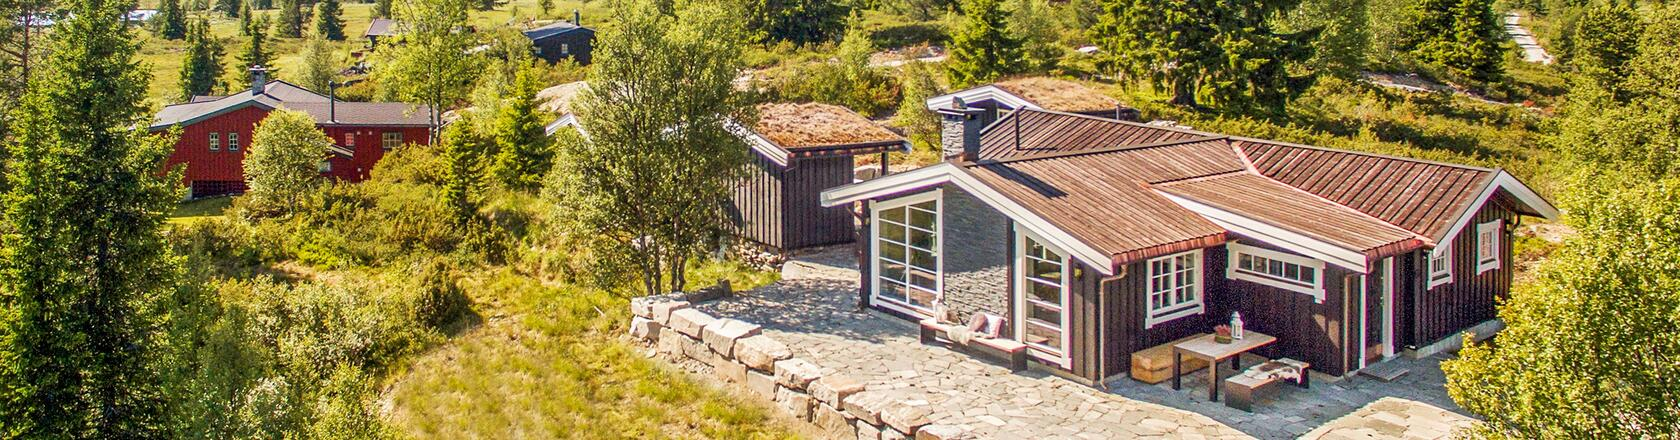 Eastern Norway/Oslo fiord in Norway - Rent a holiday home with DanCenter